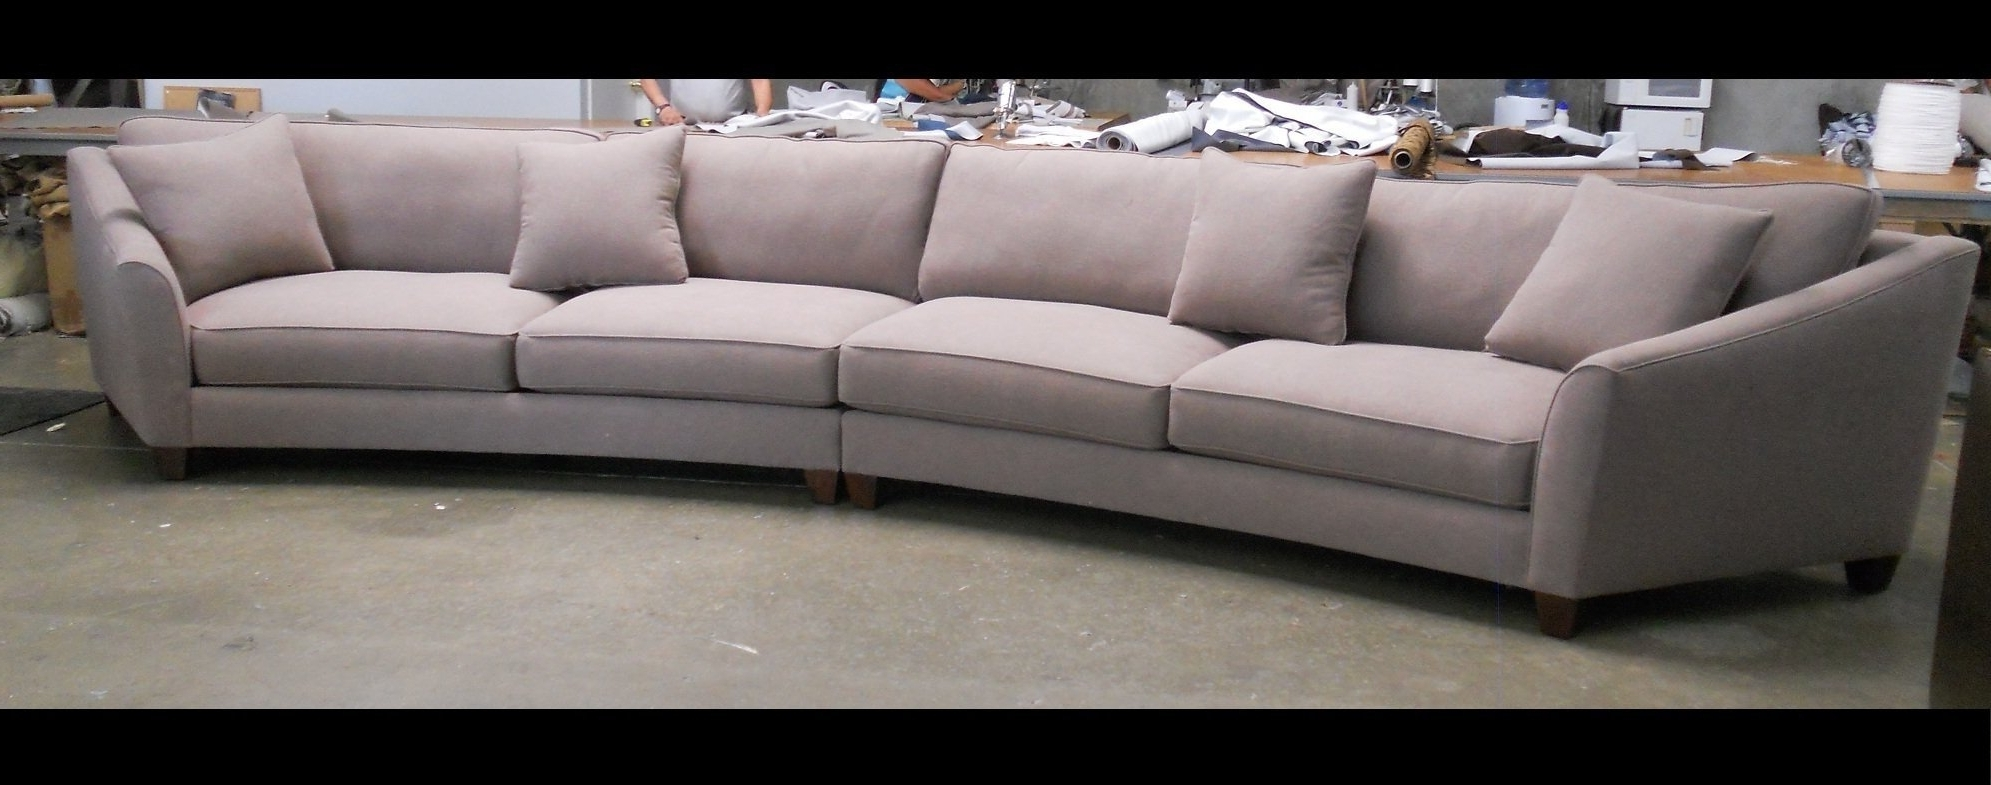 Joining Hardware Sectional Sofas Within Most Recently Released Furniture : 5060 Recliner Sectional Sofa Costco $699 Corner Couch (View 9 of 15)